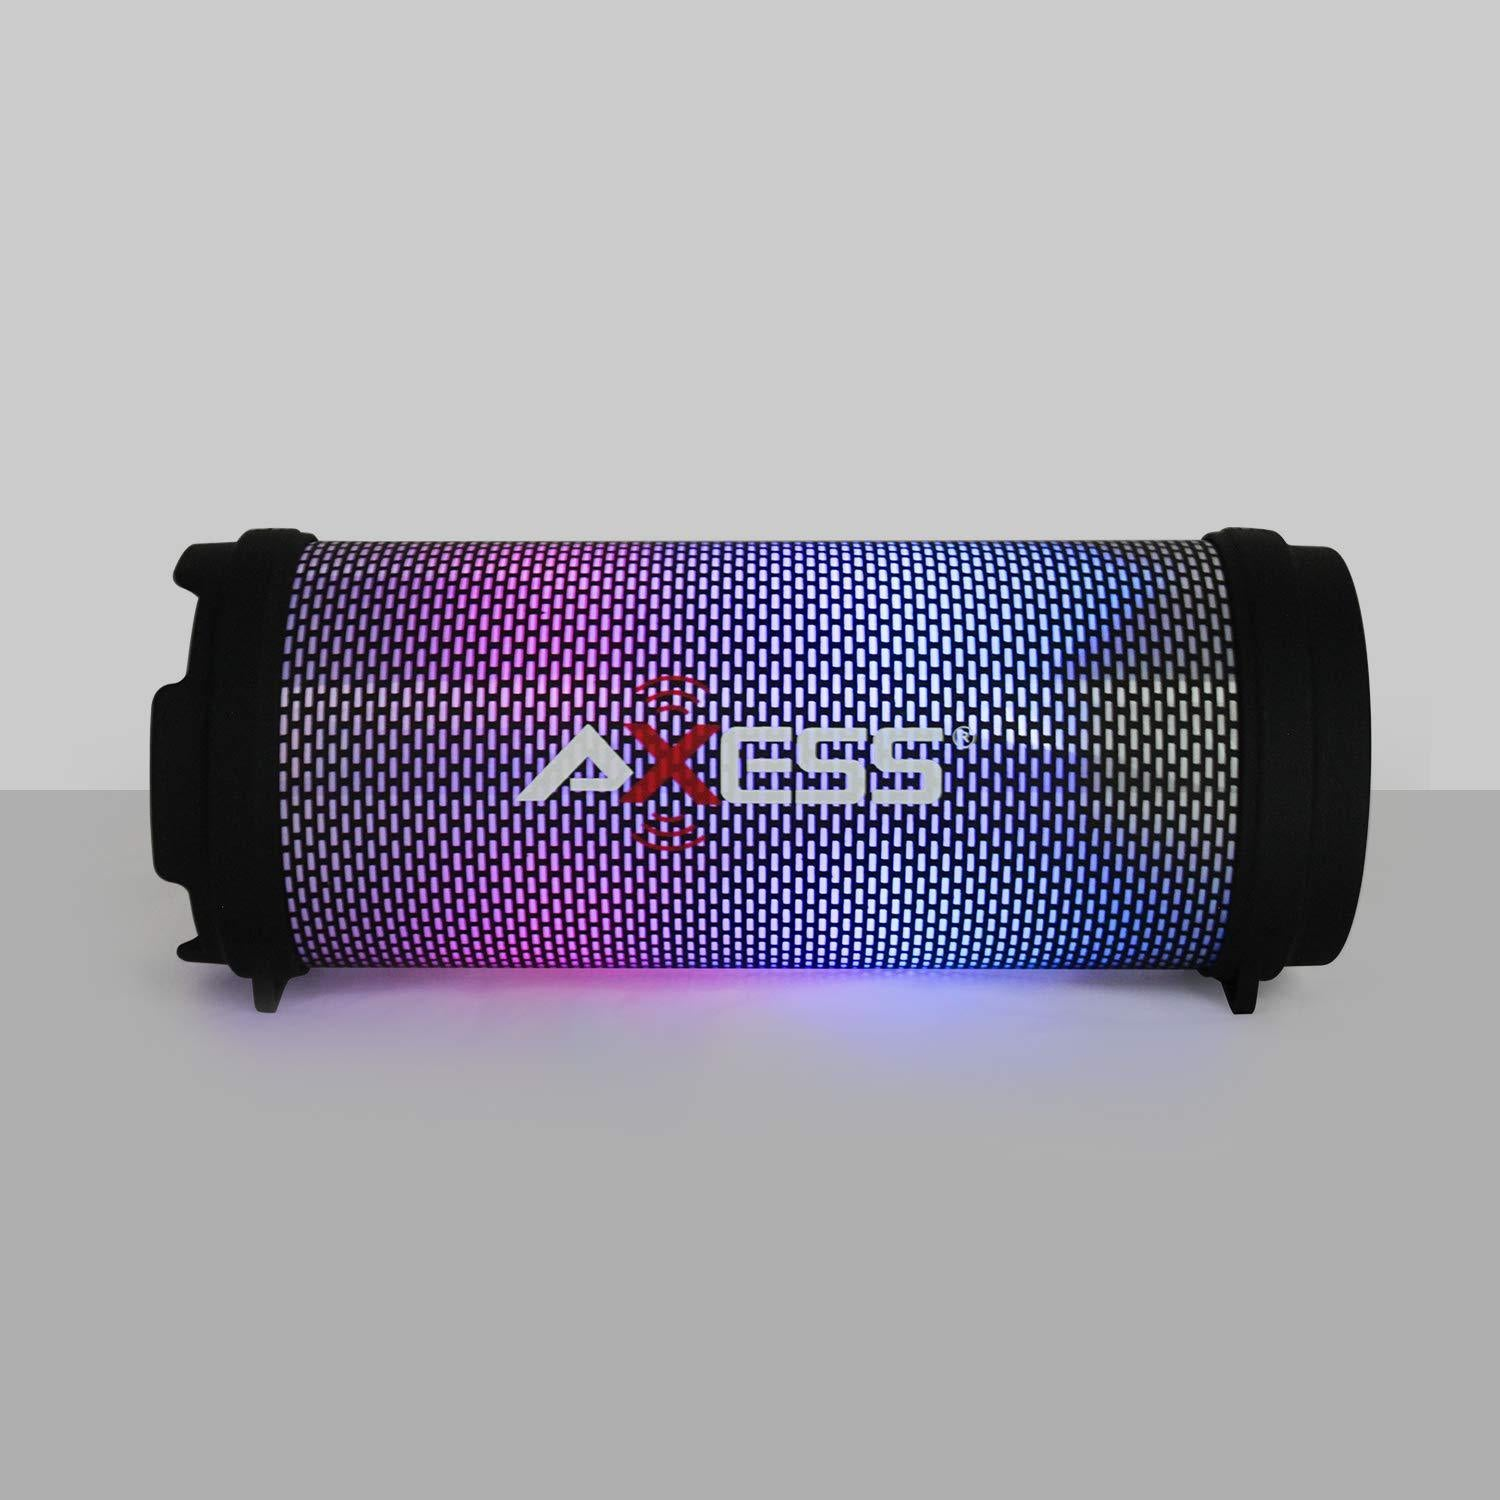 AXESS SPBL1043 Mini Portable Bluetooth Hi-Fi Bluetooth Speaker with Dancing LED Lights, Pink